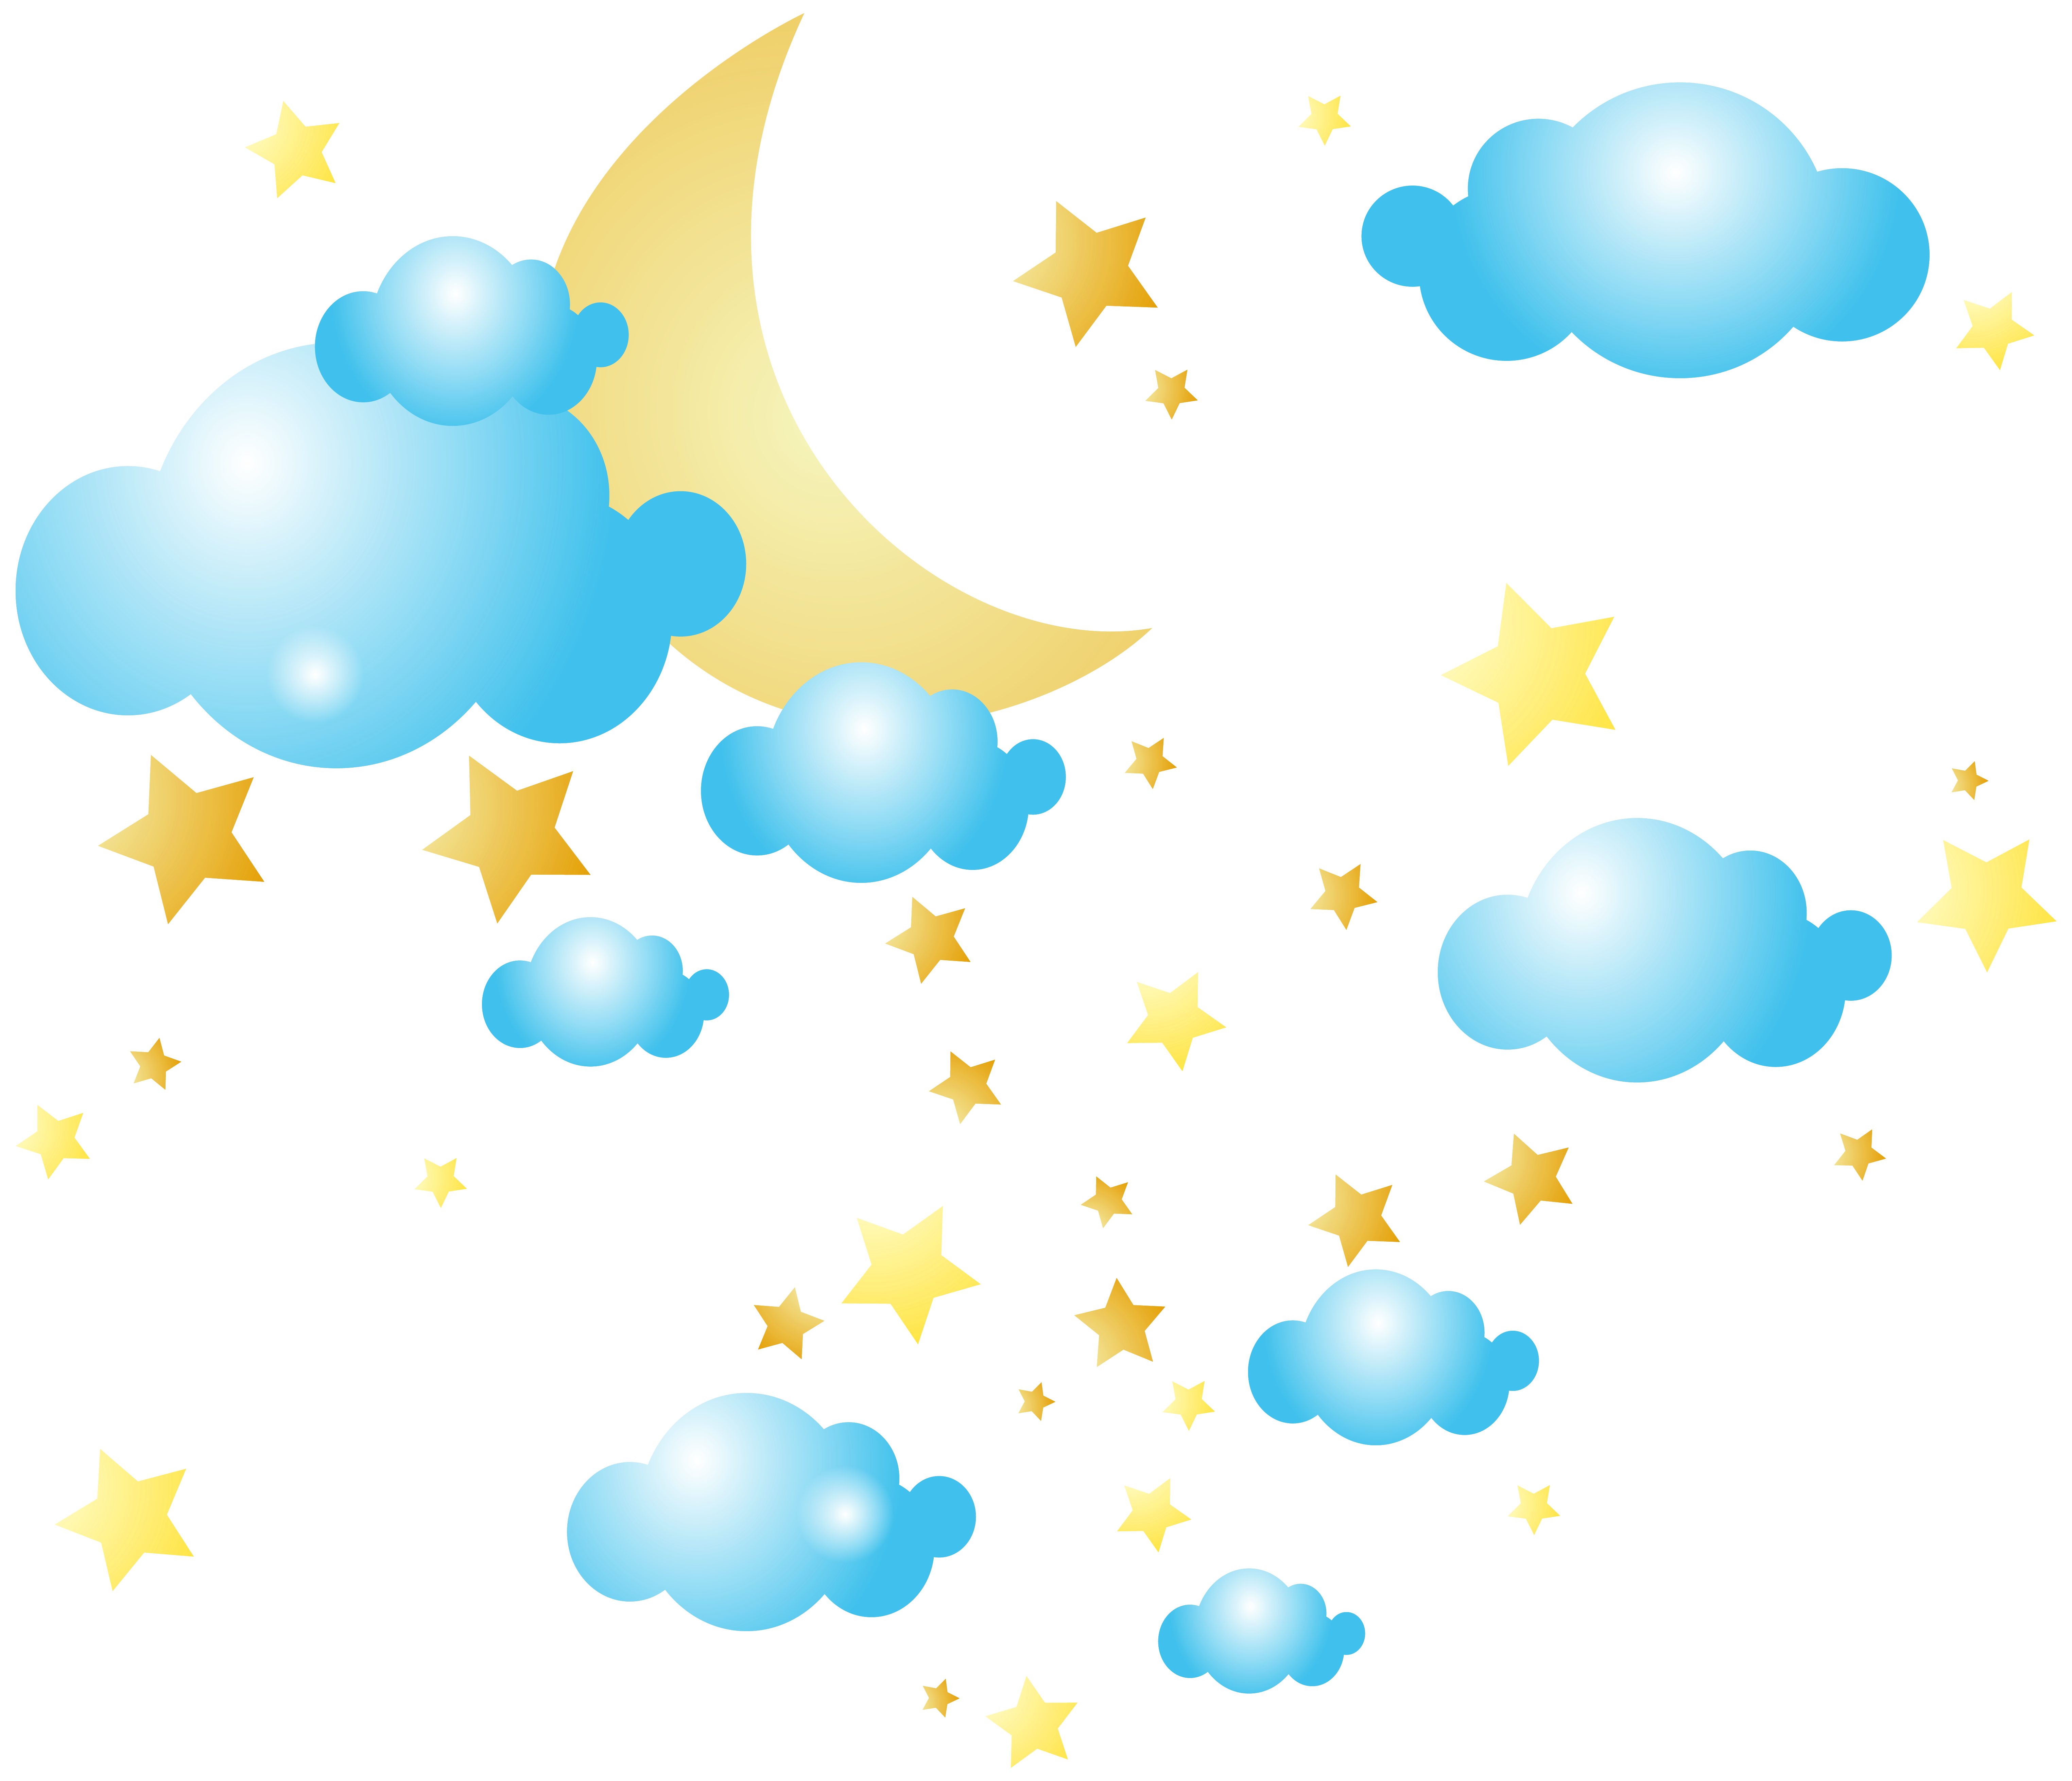 Space wallpaper png. Collection of free clouding